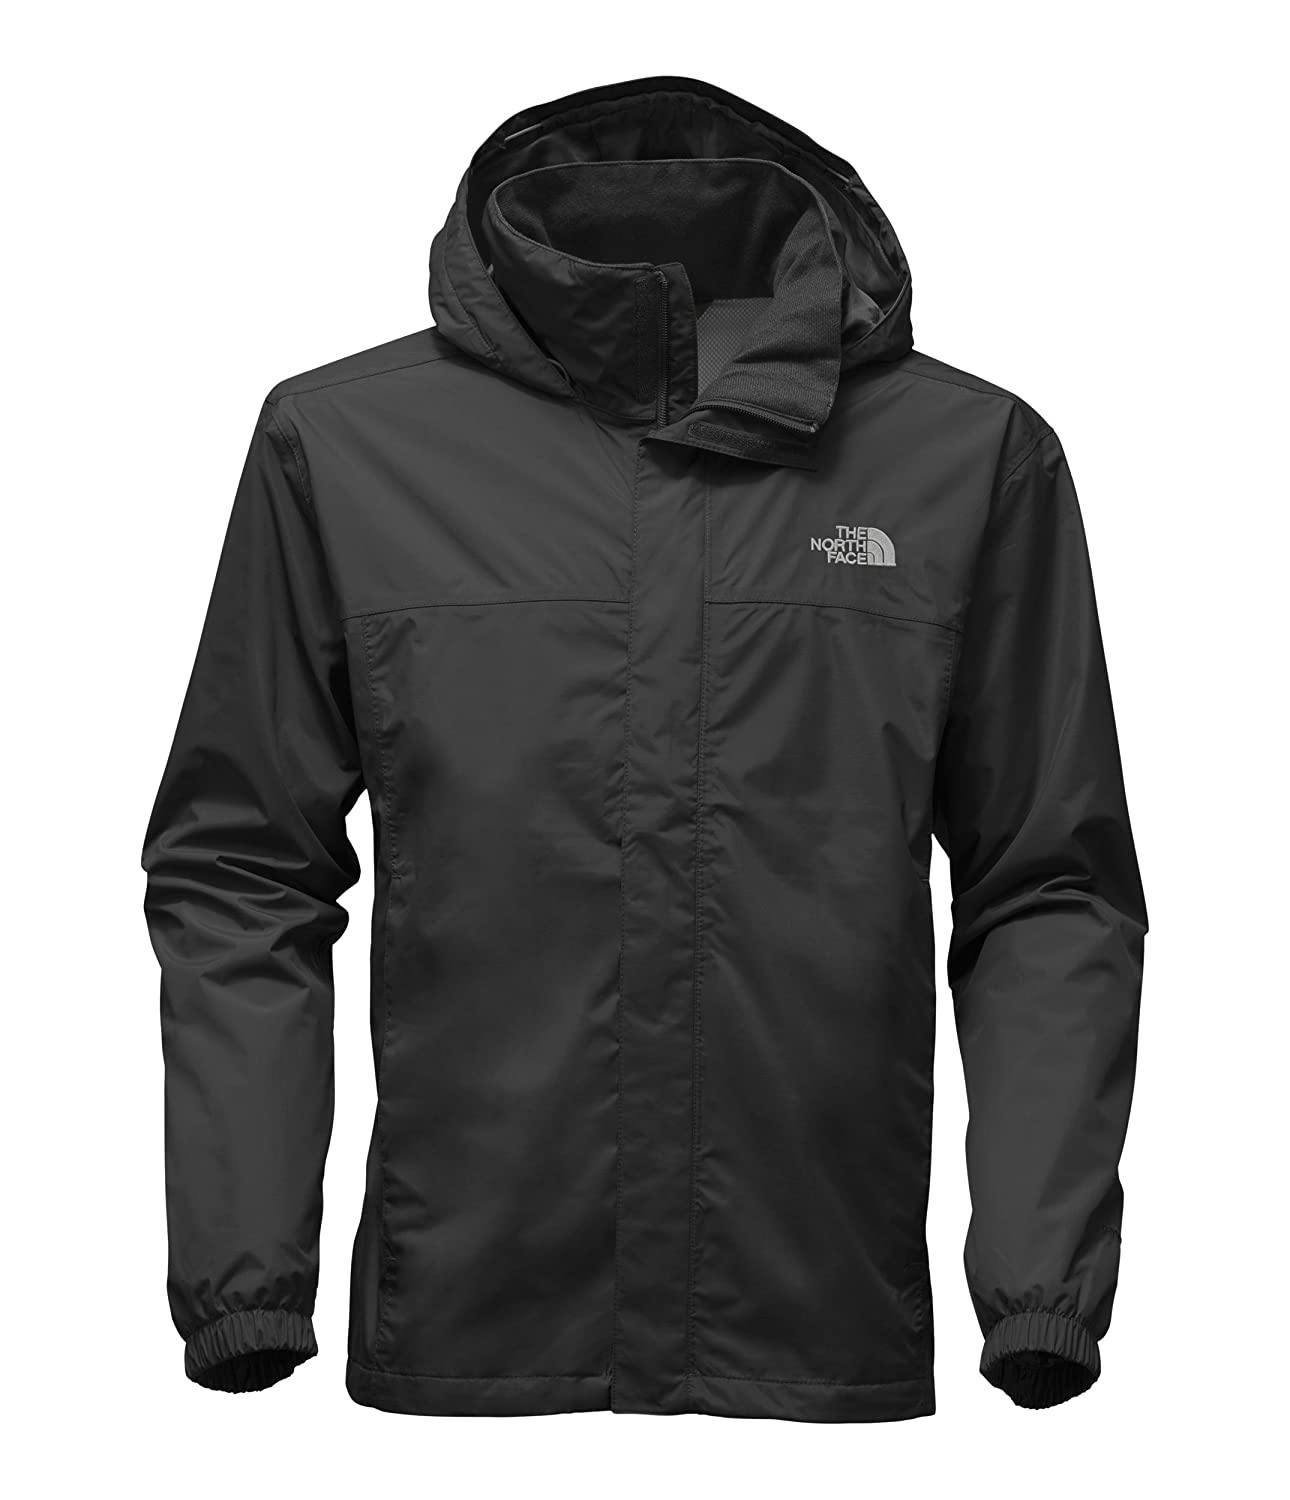 The North Face Men's Resolve 2 Jacket NF0A2VD5